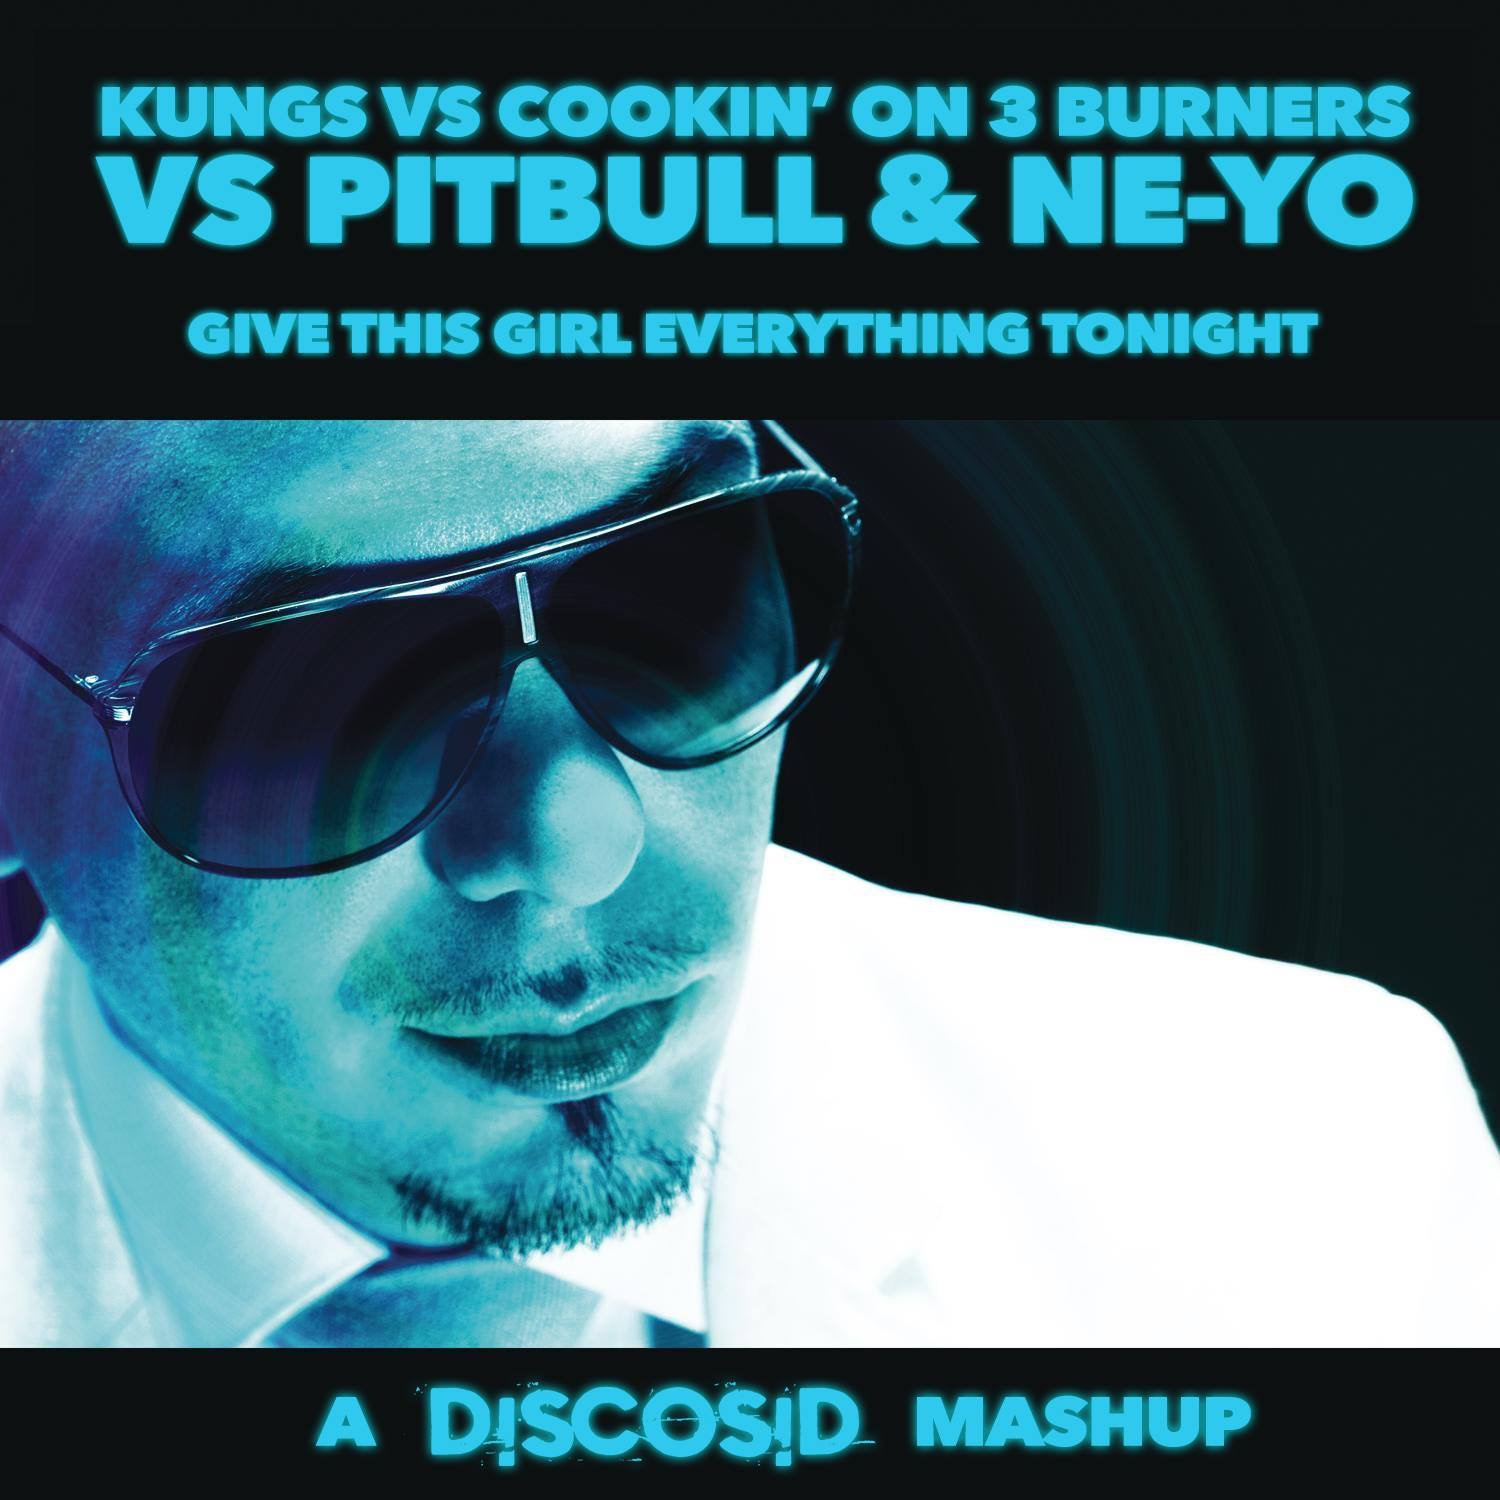 Kungs Vs Cookin' On 3 Burners Vs Pitbull & Neyo - Give This Girl Everything Tonight (Discosid Mashup)